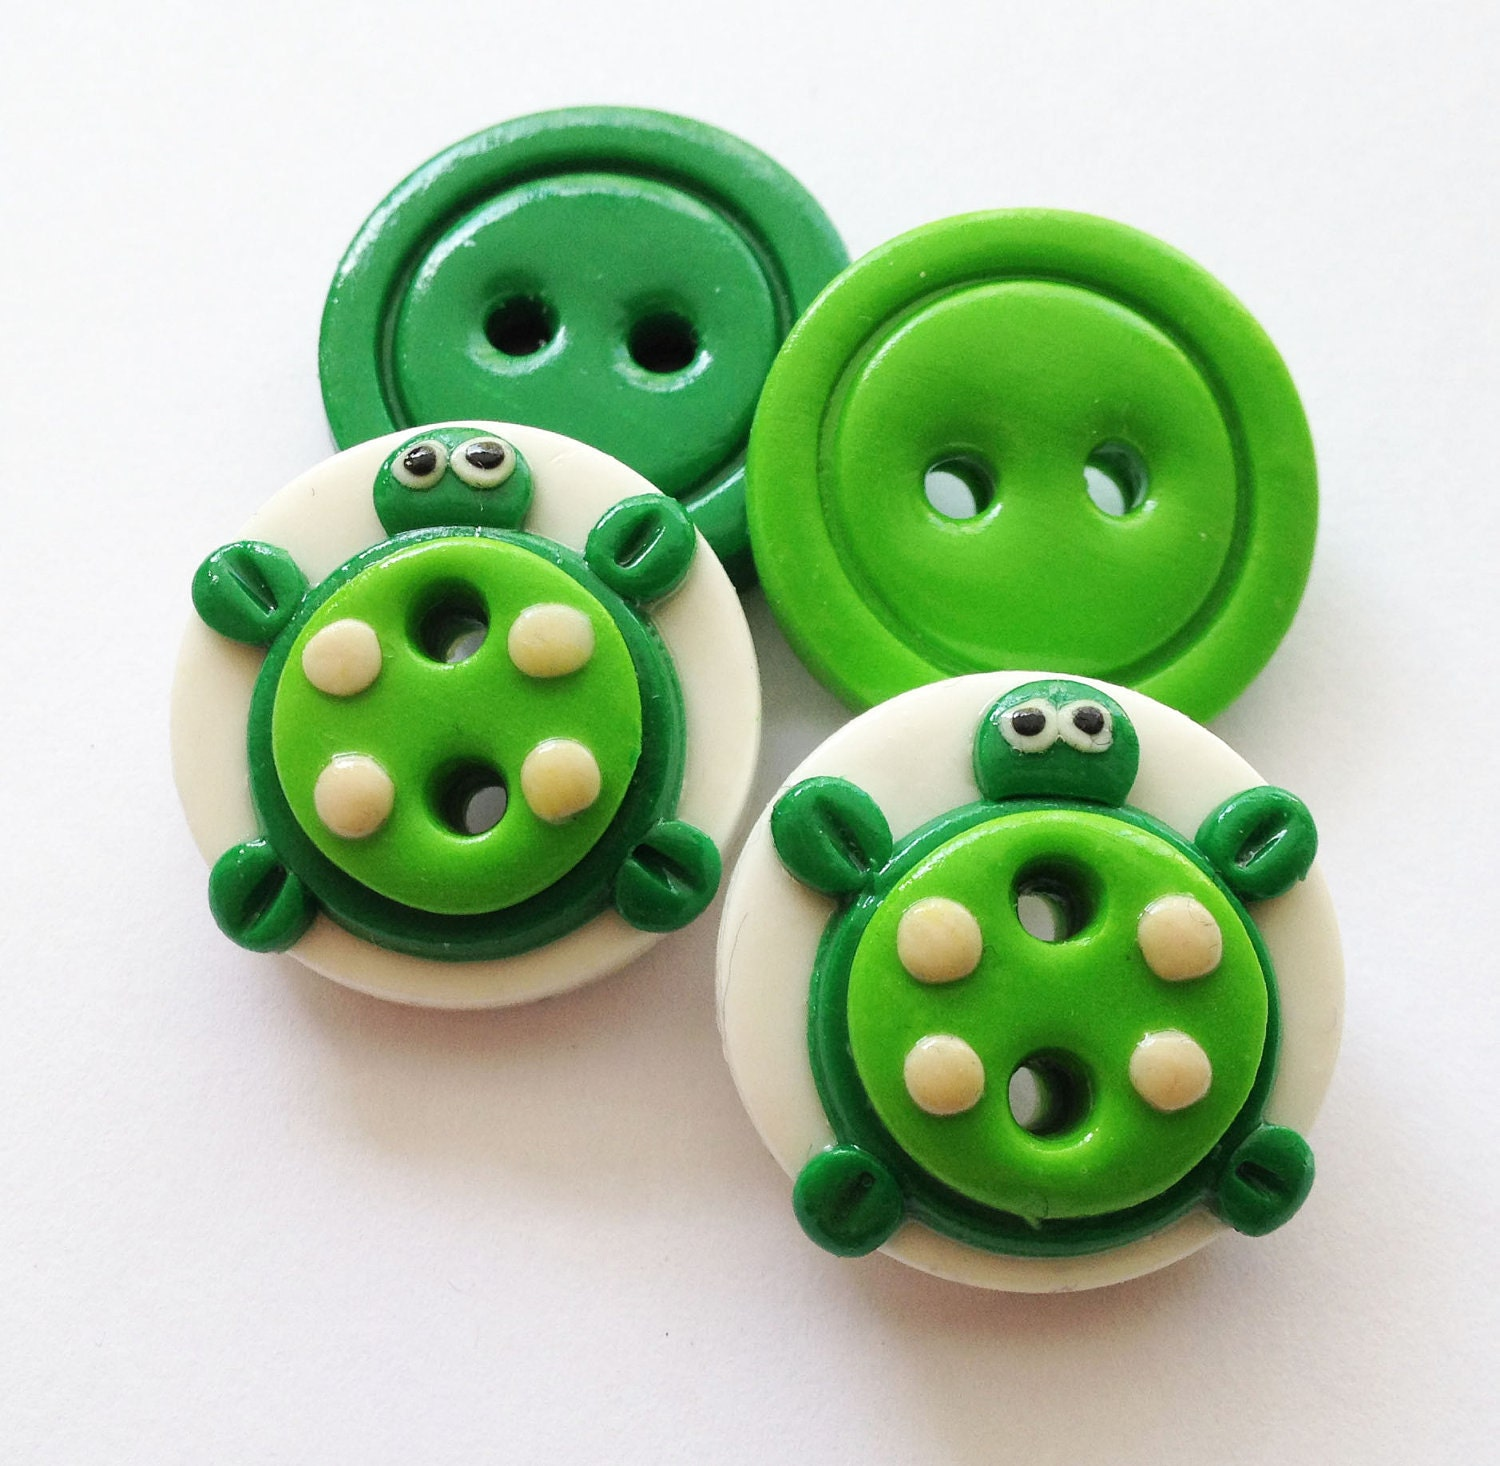 How to Make Polymer Clay Buttons